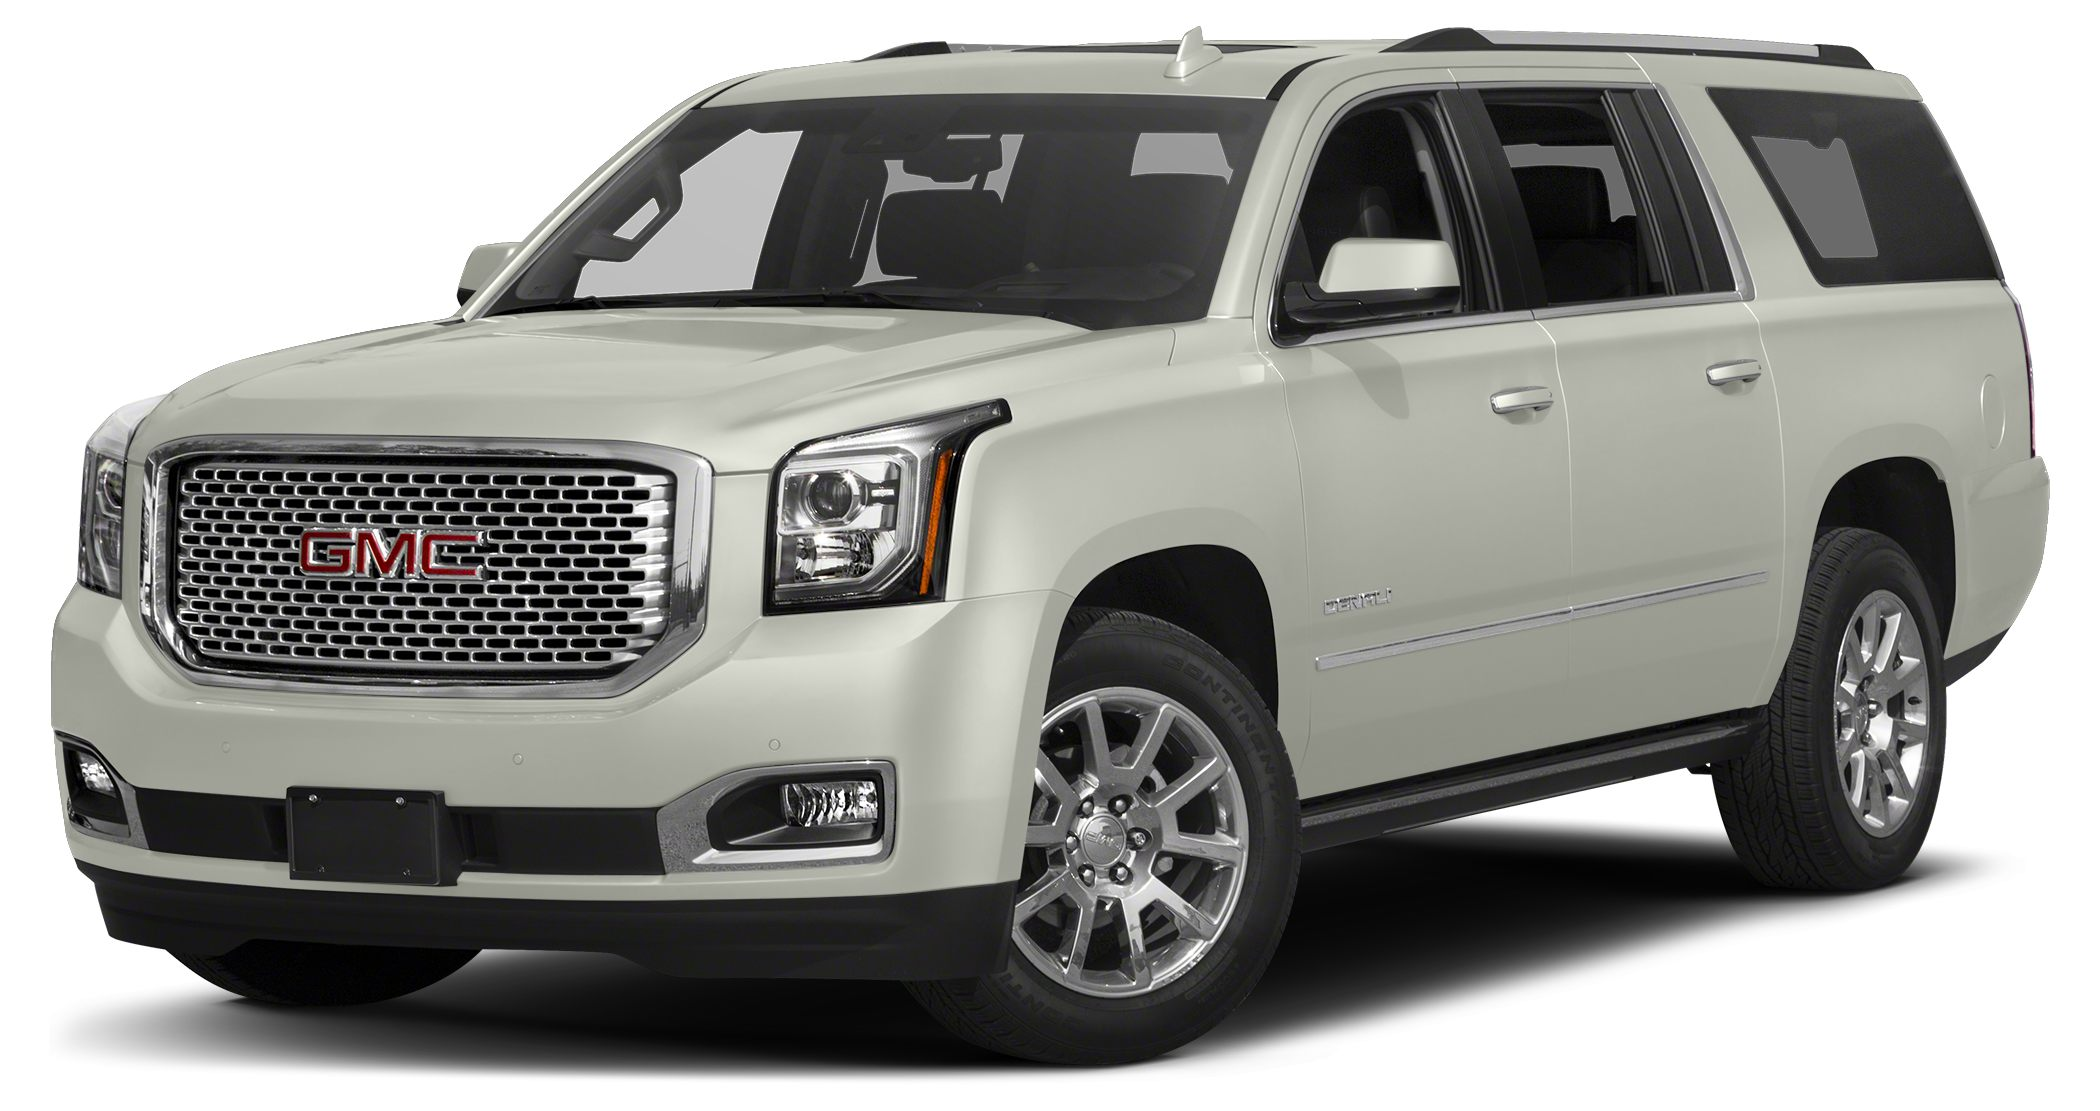 2016 GMC Yukon XL Denali Navigation 3rd Row Seat Heated Leather Seats Rear Air Trailer Hitch